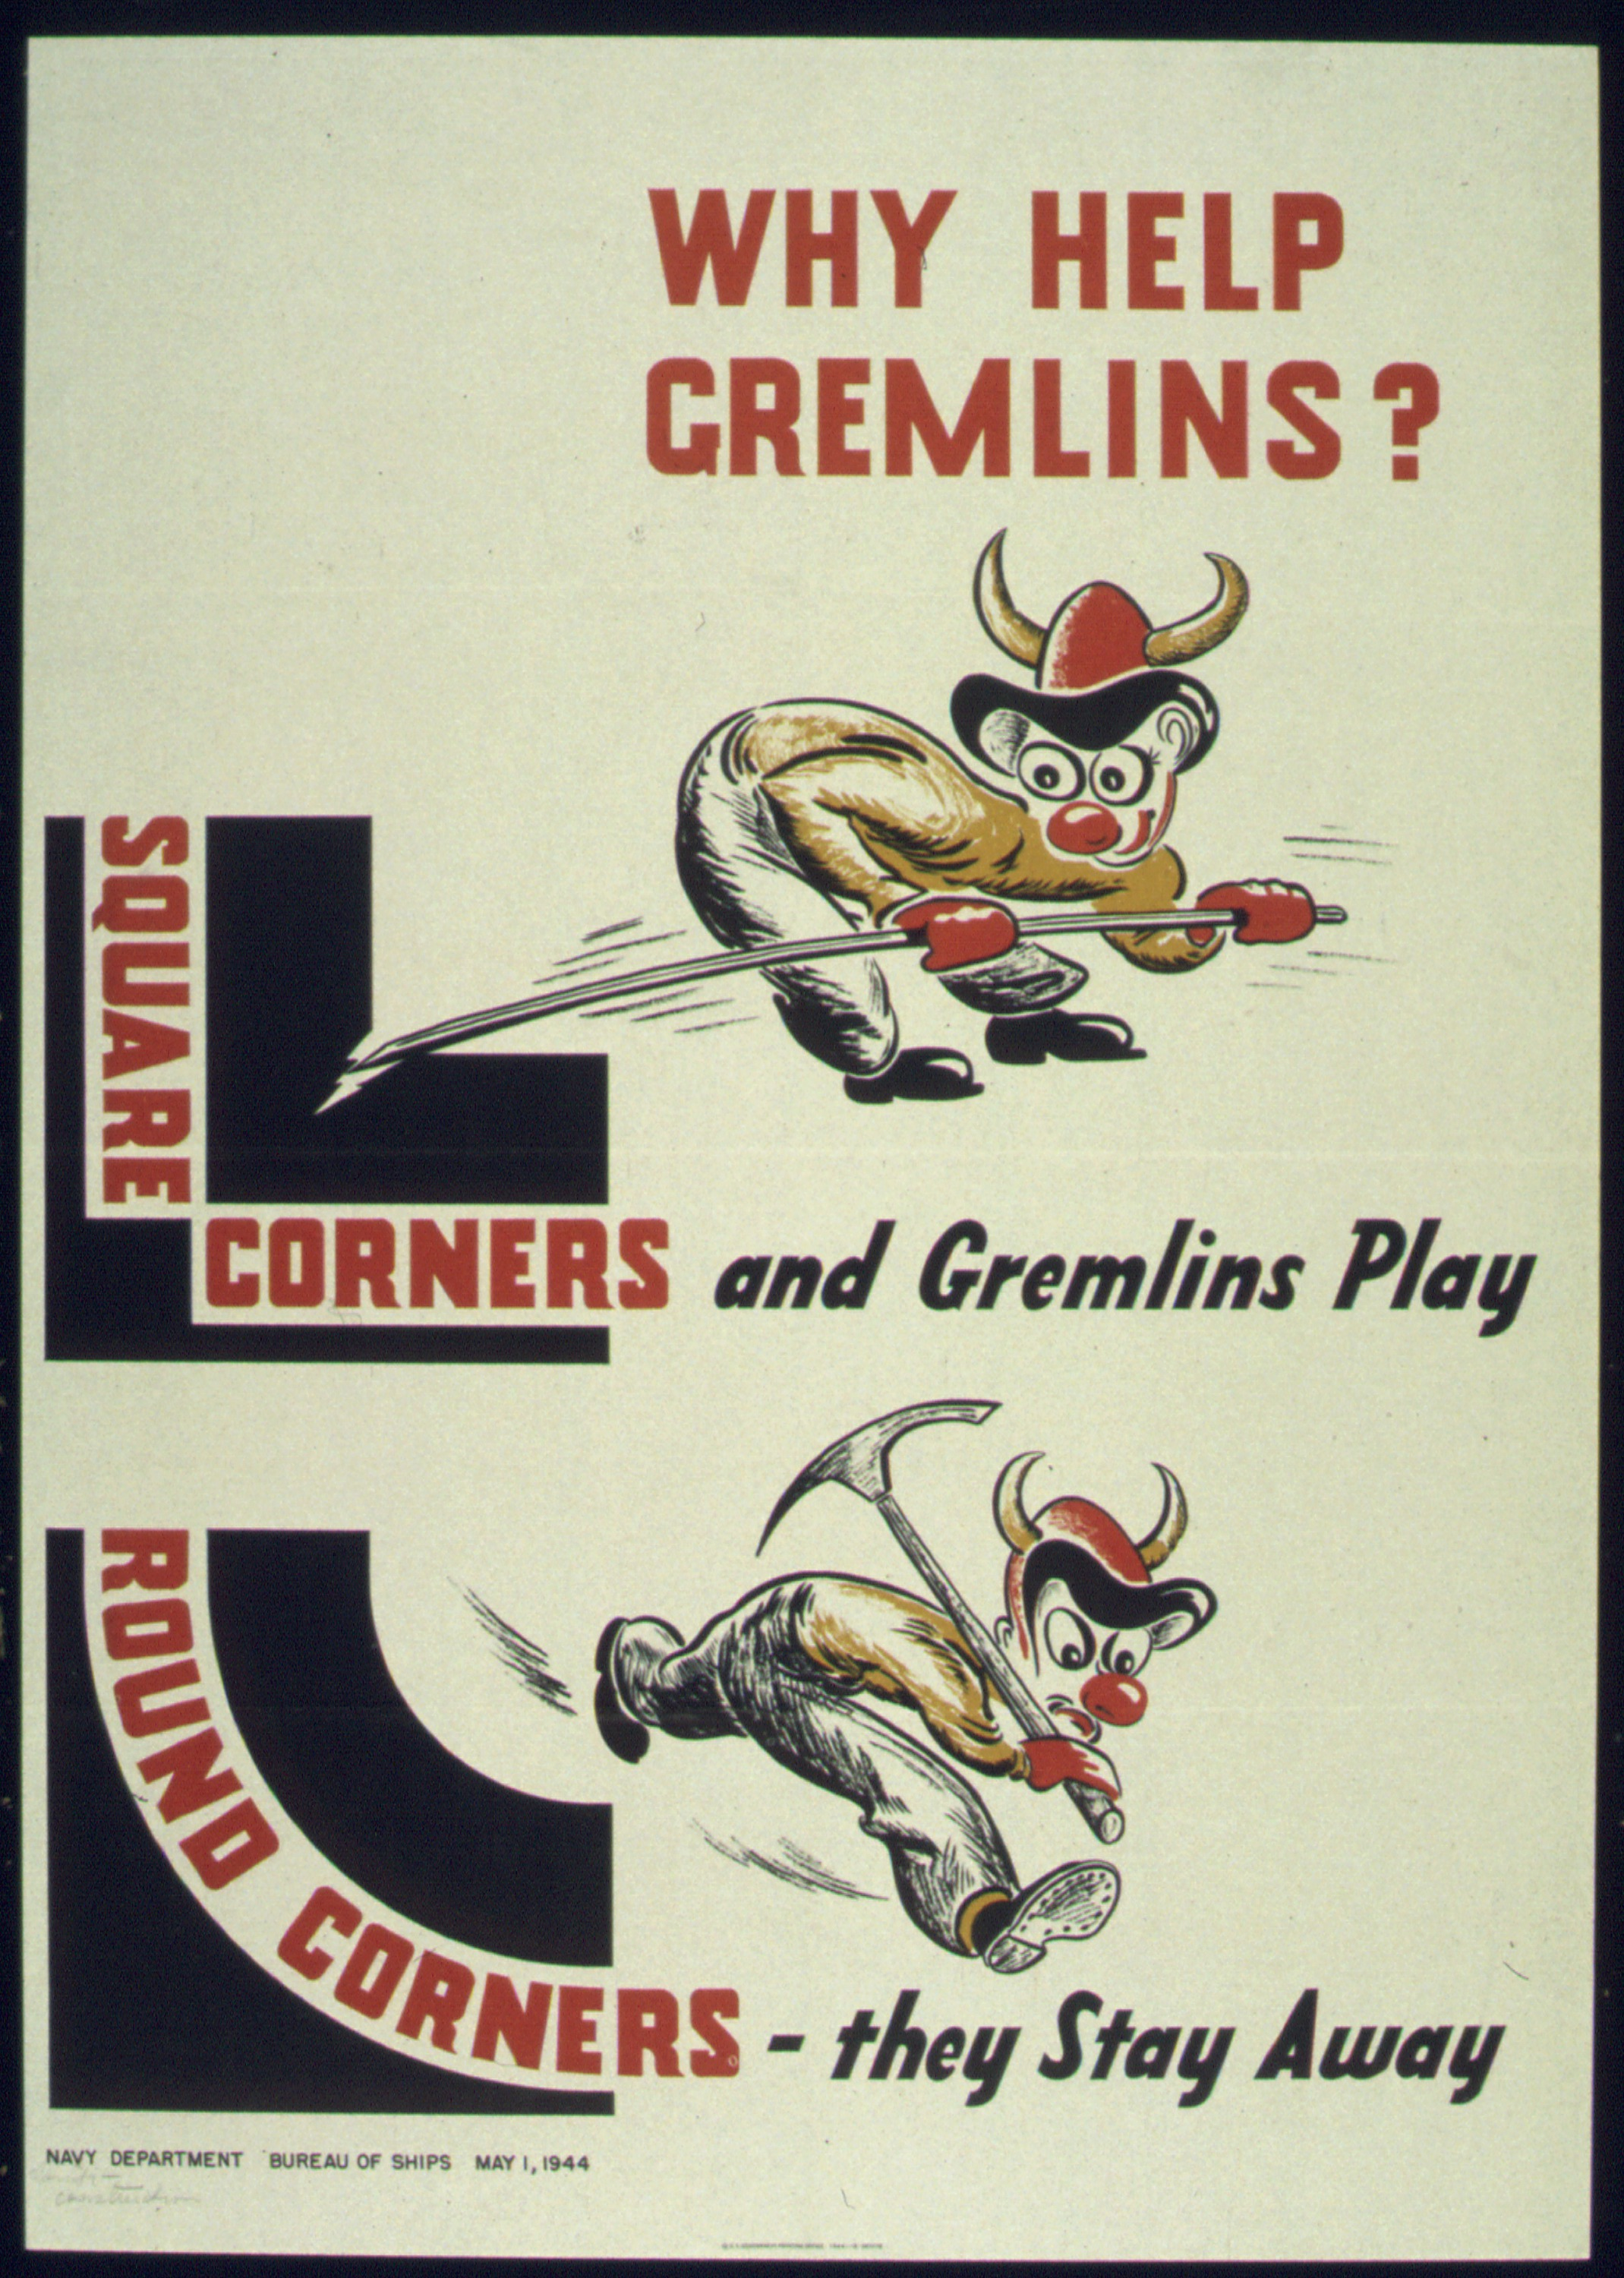 Gremlin appears on this poster issued by the us government during